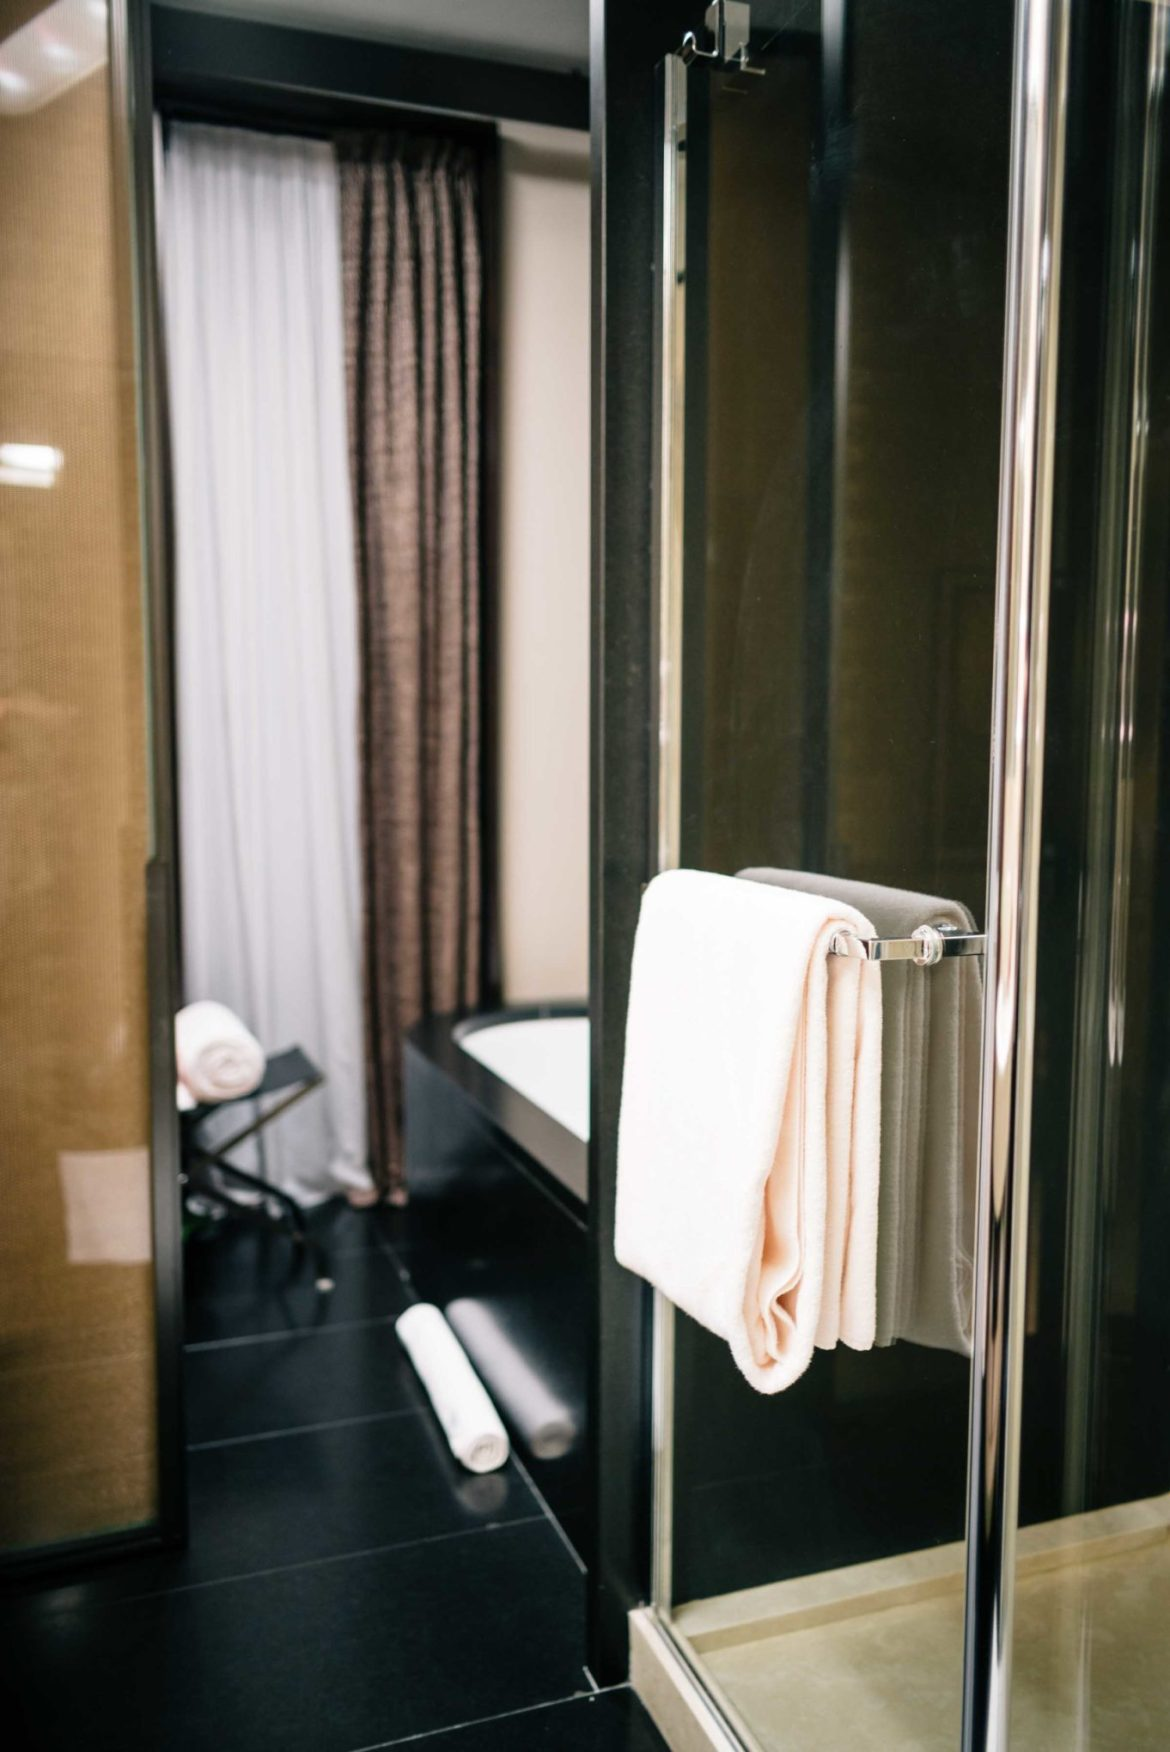 Stay at the Bulgari hotel who offers large bathrooms with Bulgari toiletries and black marble at the Hotel Bulgari Milano, The Taste Edit